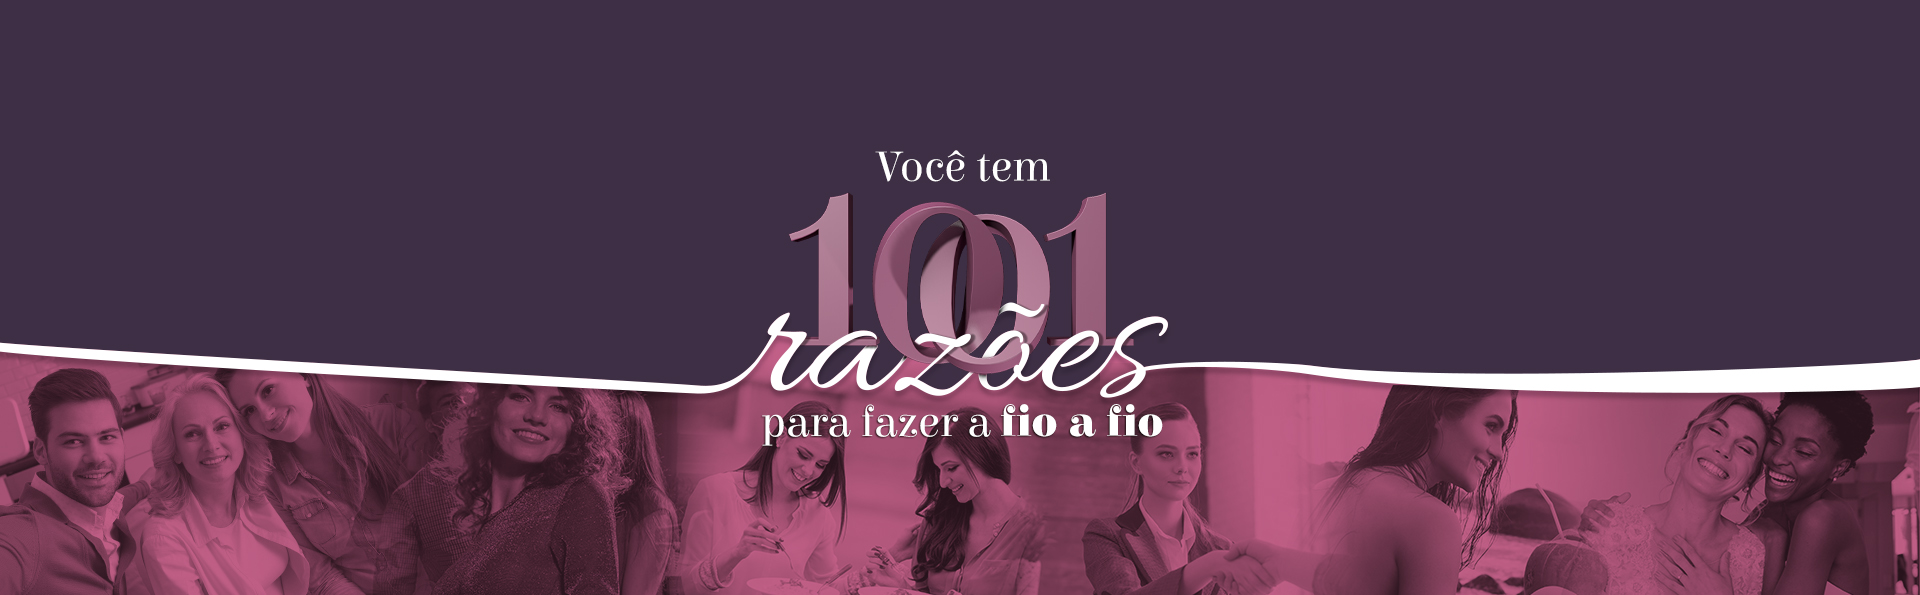 banner site 1001 razoes expressao do olhar